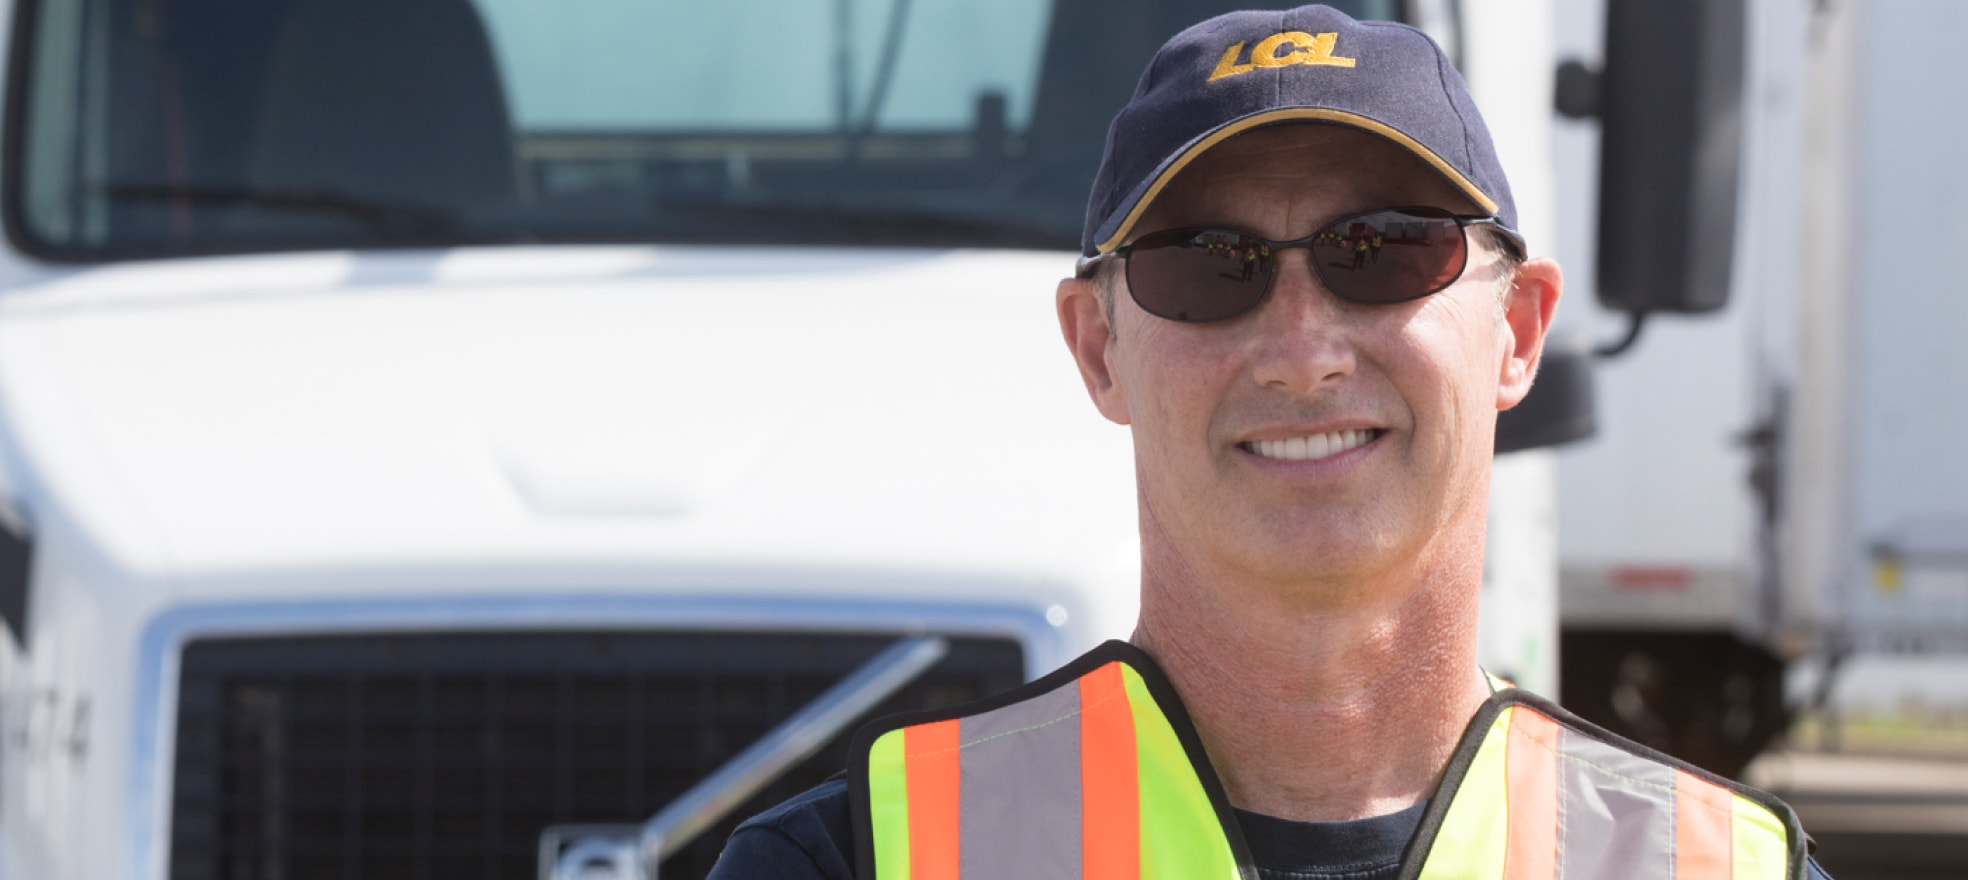 Man in safety vest smiling in front of a truck.